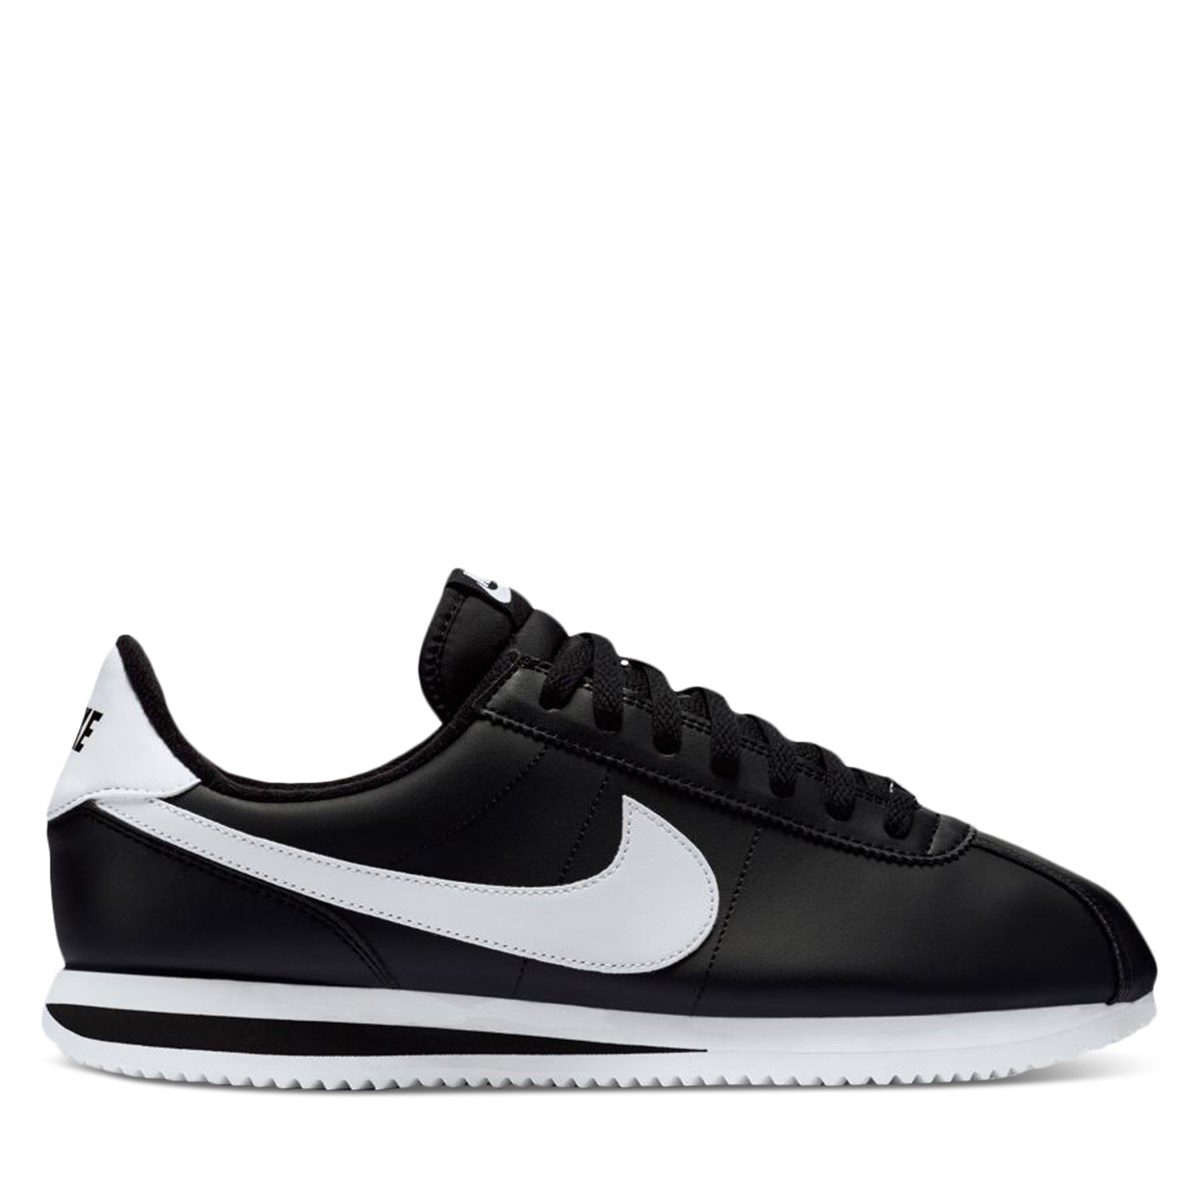 competitive price 63c05 428bc Men's Cortez Sneaker in Black